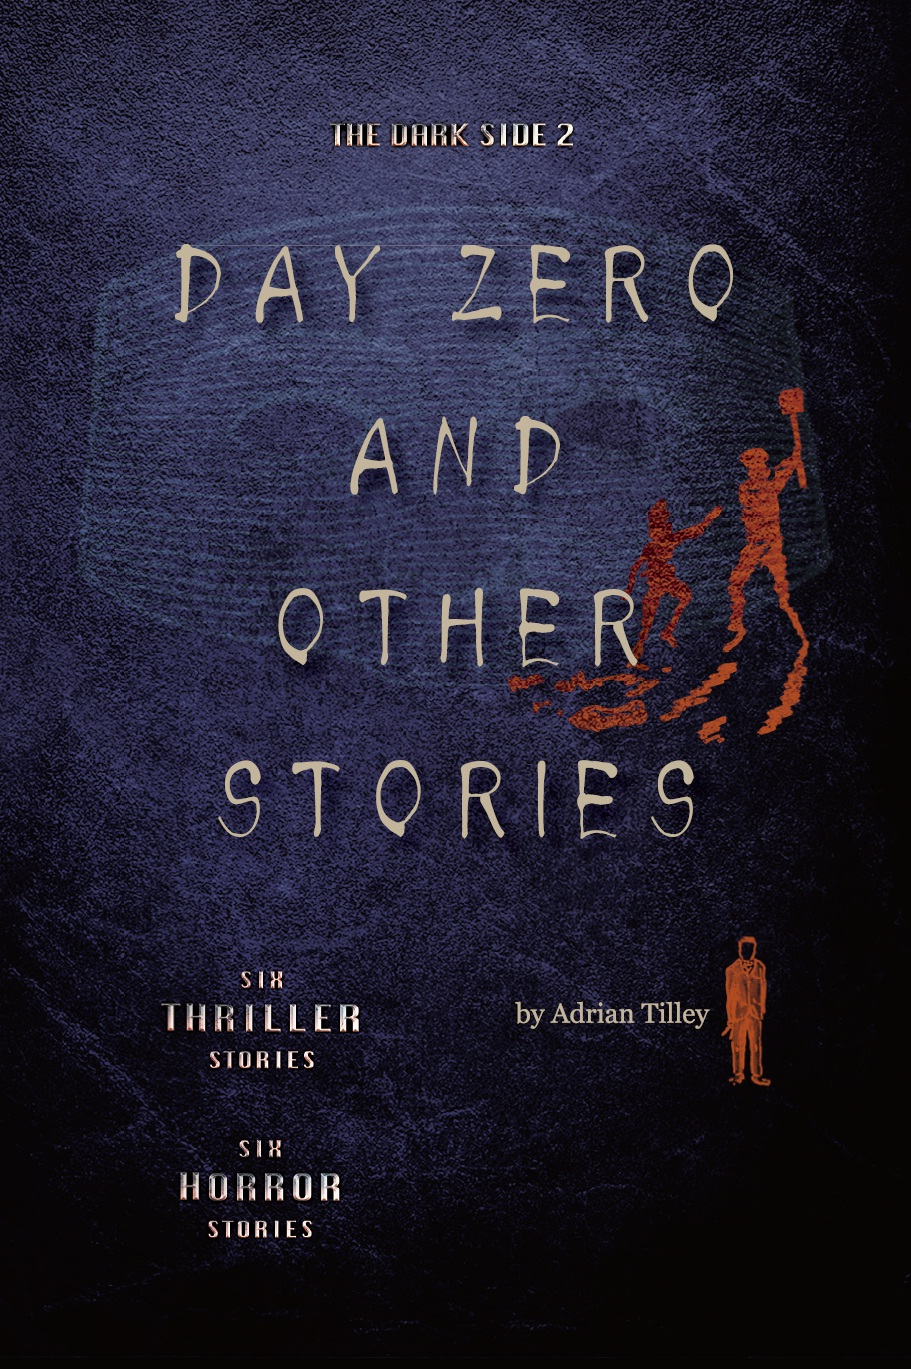 The Dark Side 2  Day Zero and Other Stories